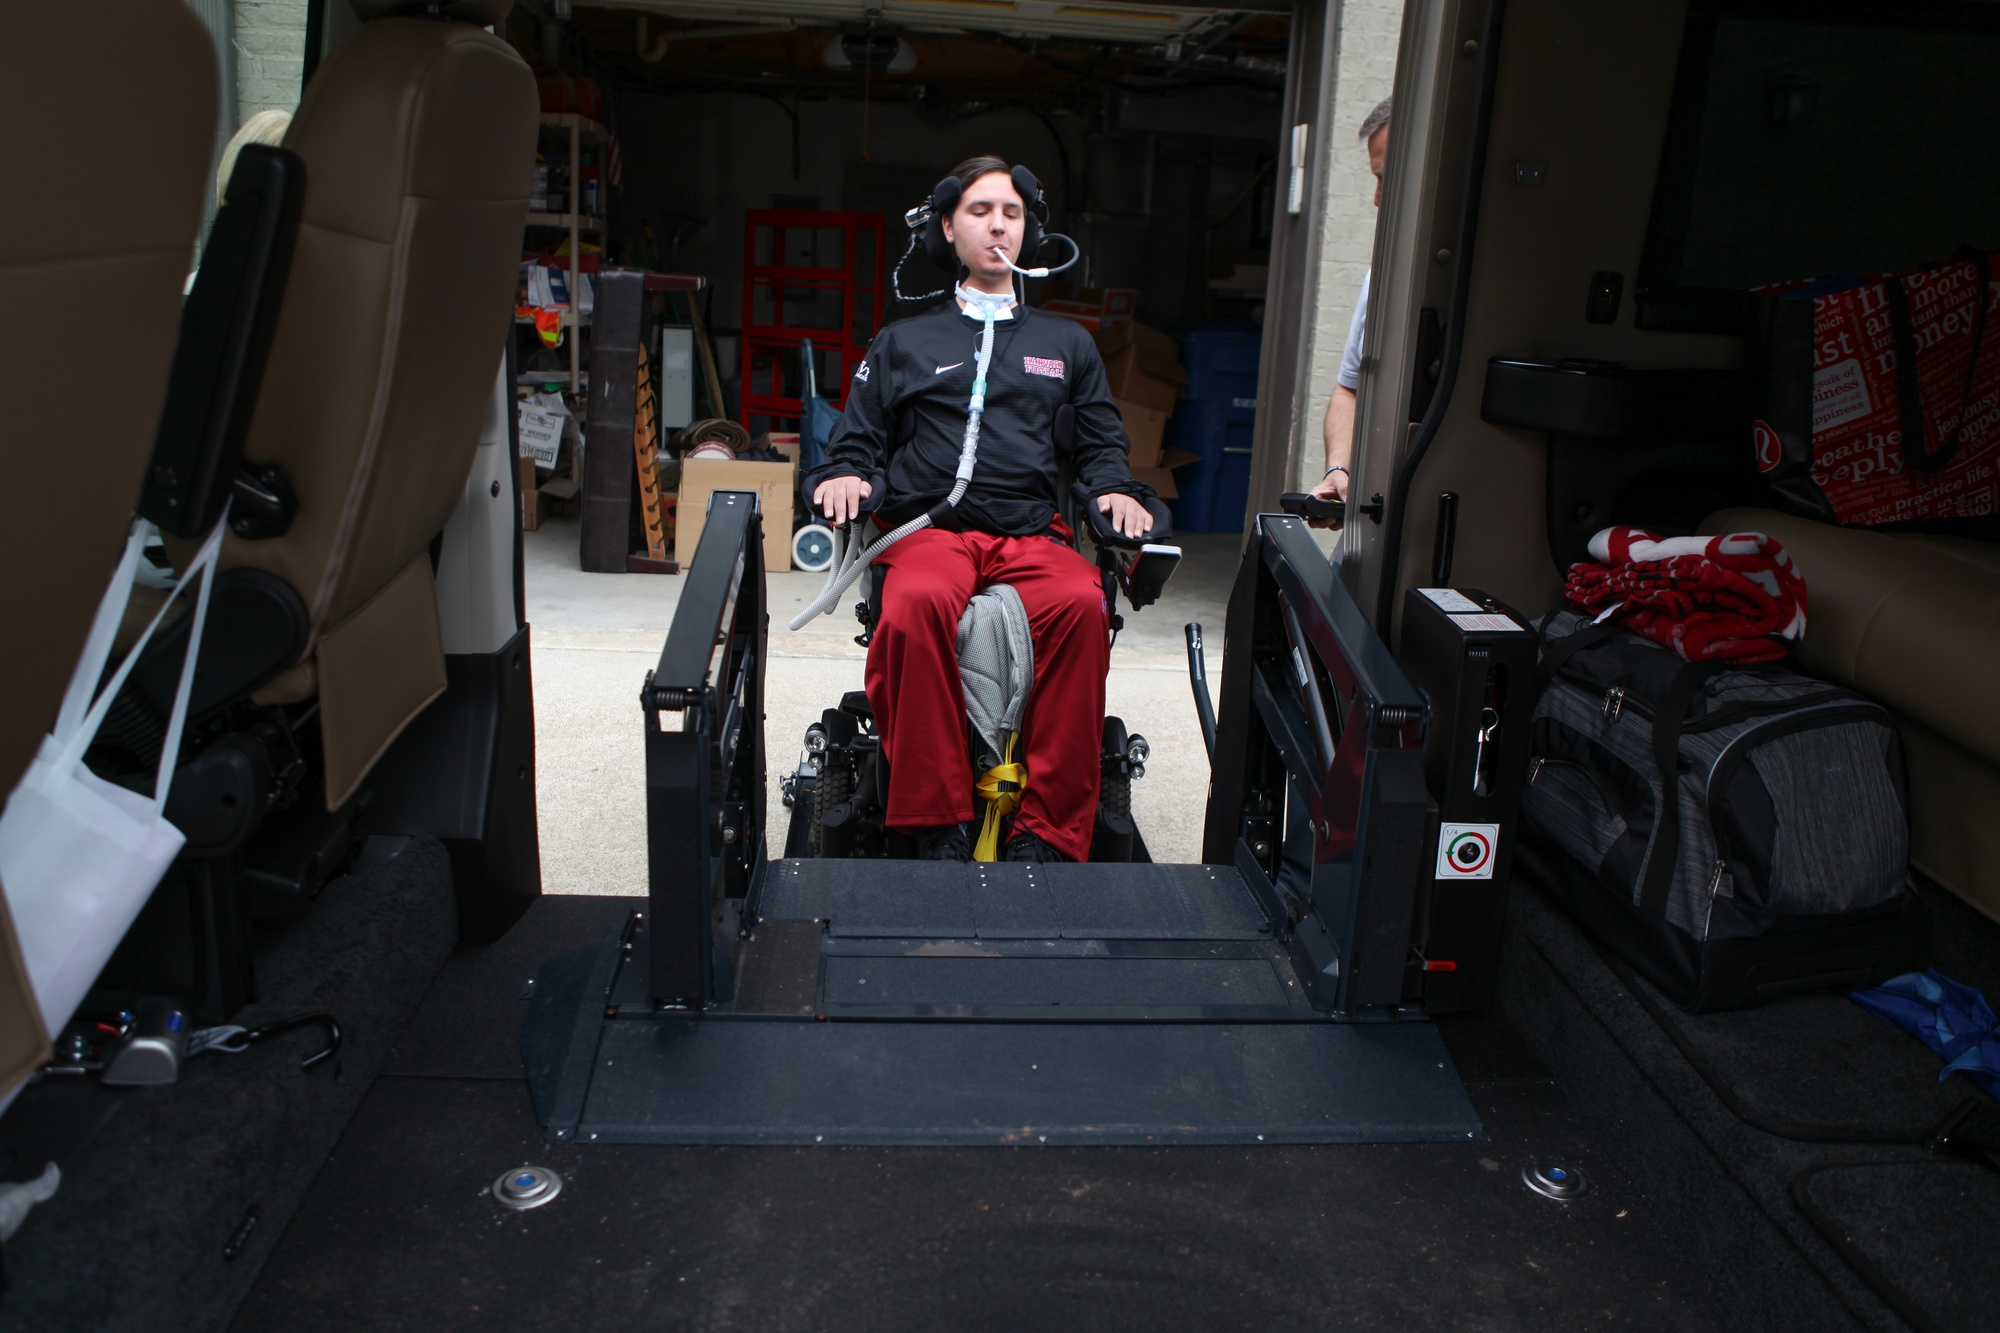 Six months after a freak accident in his first football game as a college athlete, Ben M. Abercrombie '21 remains paralyzed from the neck down.